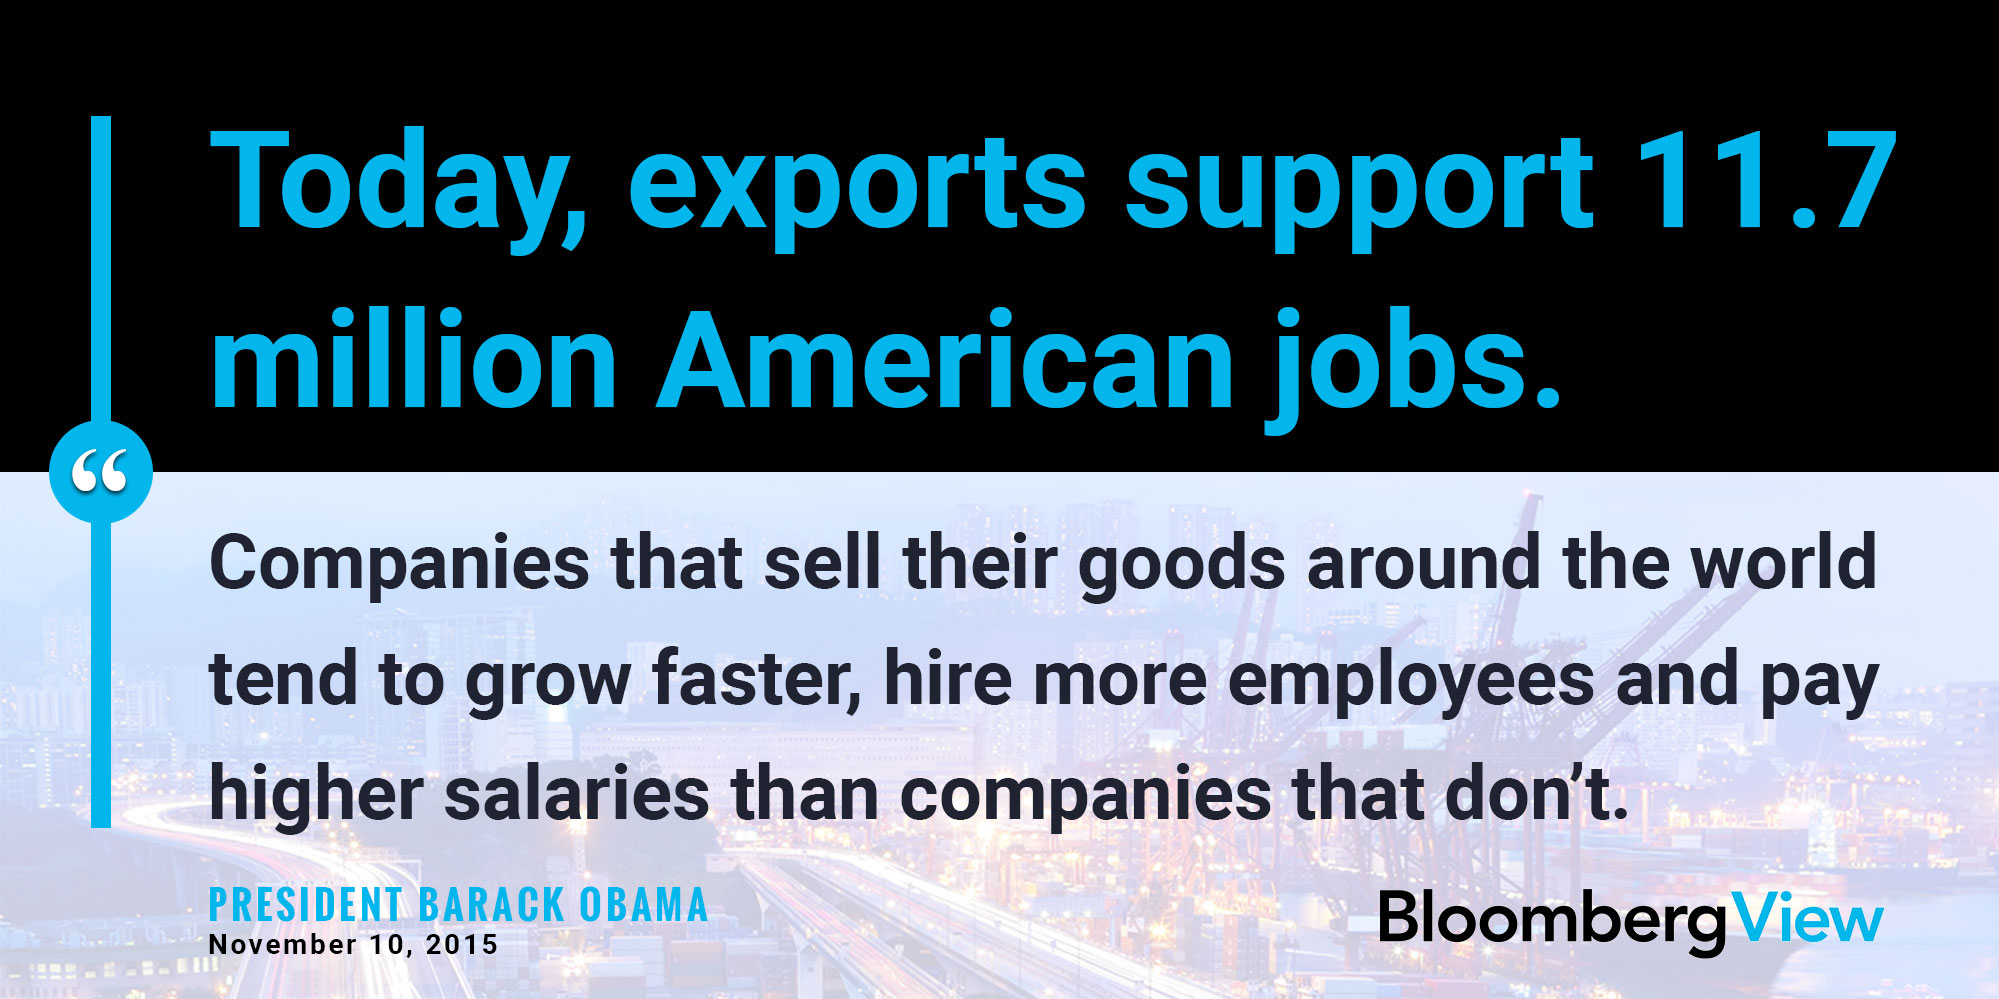 Exports support 11.7 million American jobs.